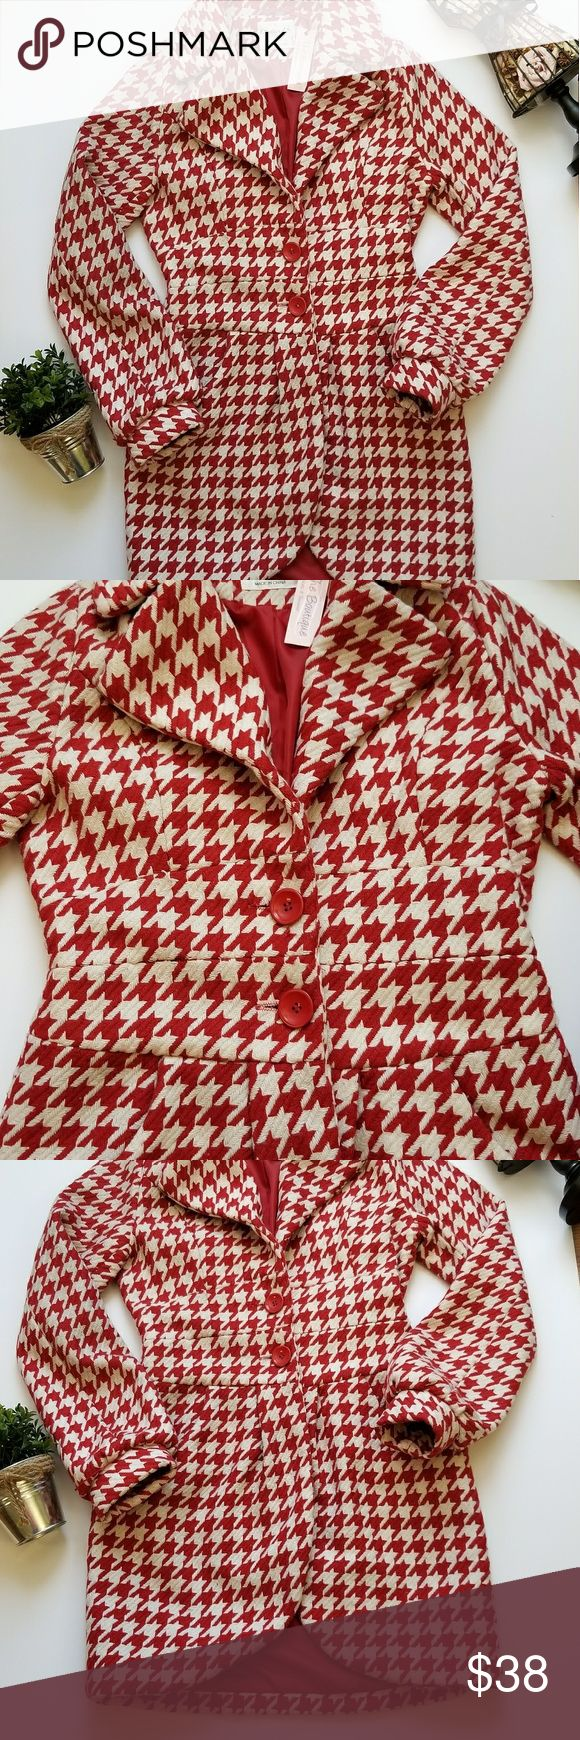 Red & White Tailored Houndstooth Peacoat Brand New  ***PRICE IS VERY FIRM*** Amazing Red & White *Vintage Style* Houndstooth Tailored Peacoat  ***Dry Clean Only***  Measurements: Size: Medium (I am true small and it fits me perfect)  Arm pit to arm pit: 18in. Waste: 15 1/2 in. Hip: 17in. Bottom flare width: 19in. Shoulder seam to end of Sleeve: 22in. Top of shoulder to very bottom: 32in.  PURCHASE BY 1PM CST AND IT WILL USUALLY SHIP THE SAME DAY !!! Better B Jackets & Coats Pea Coats